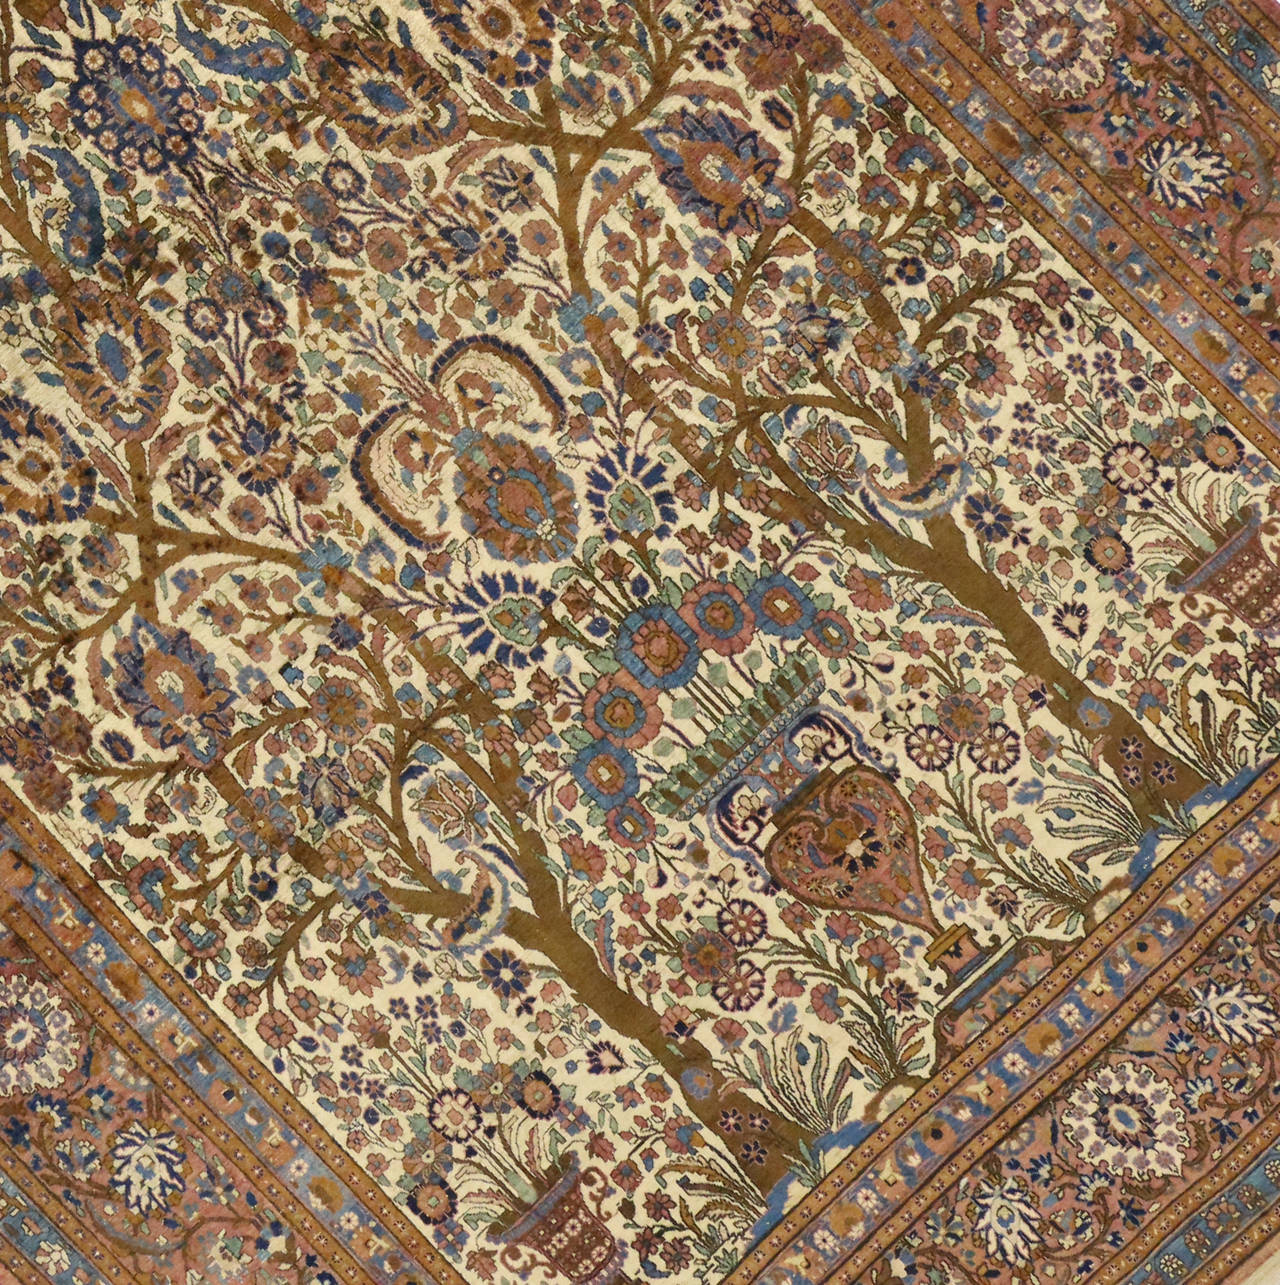 Antique Persian Mohtasham Kashan Silk Directional Rug with Neoclassic Style In Good Condition For Sale In Dallas, TX